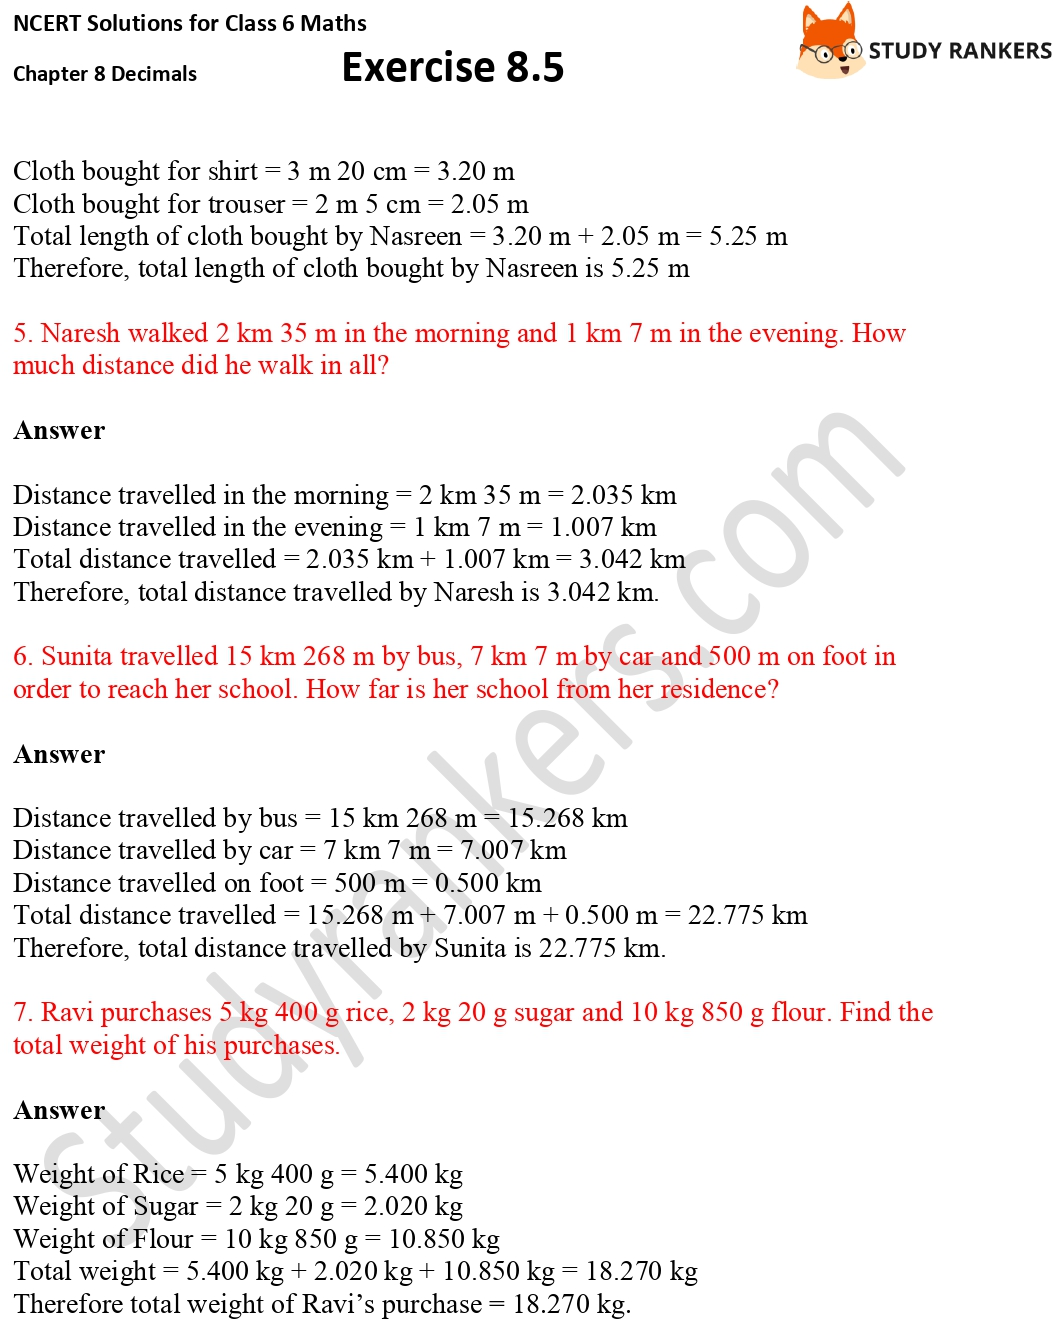 NCERT Solutions for Class 6 Maths Chapter 8 Decimals Exercise 8.5 Part 2